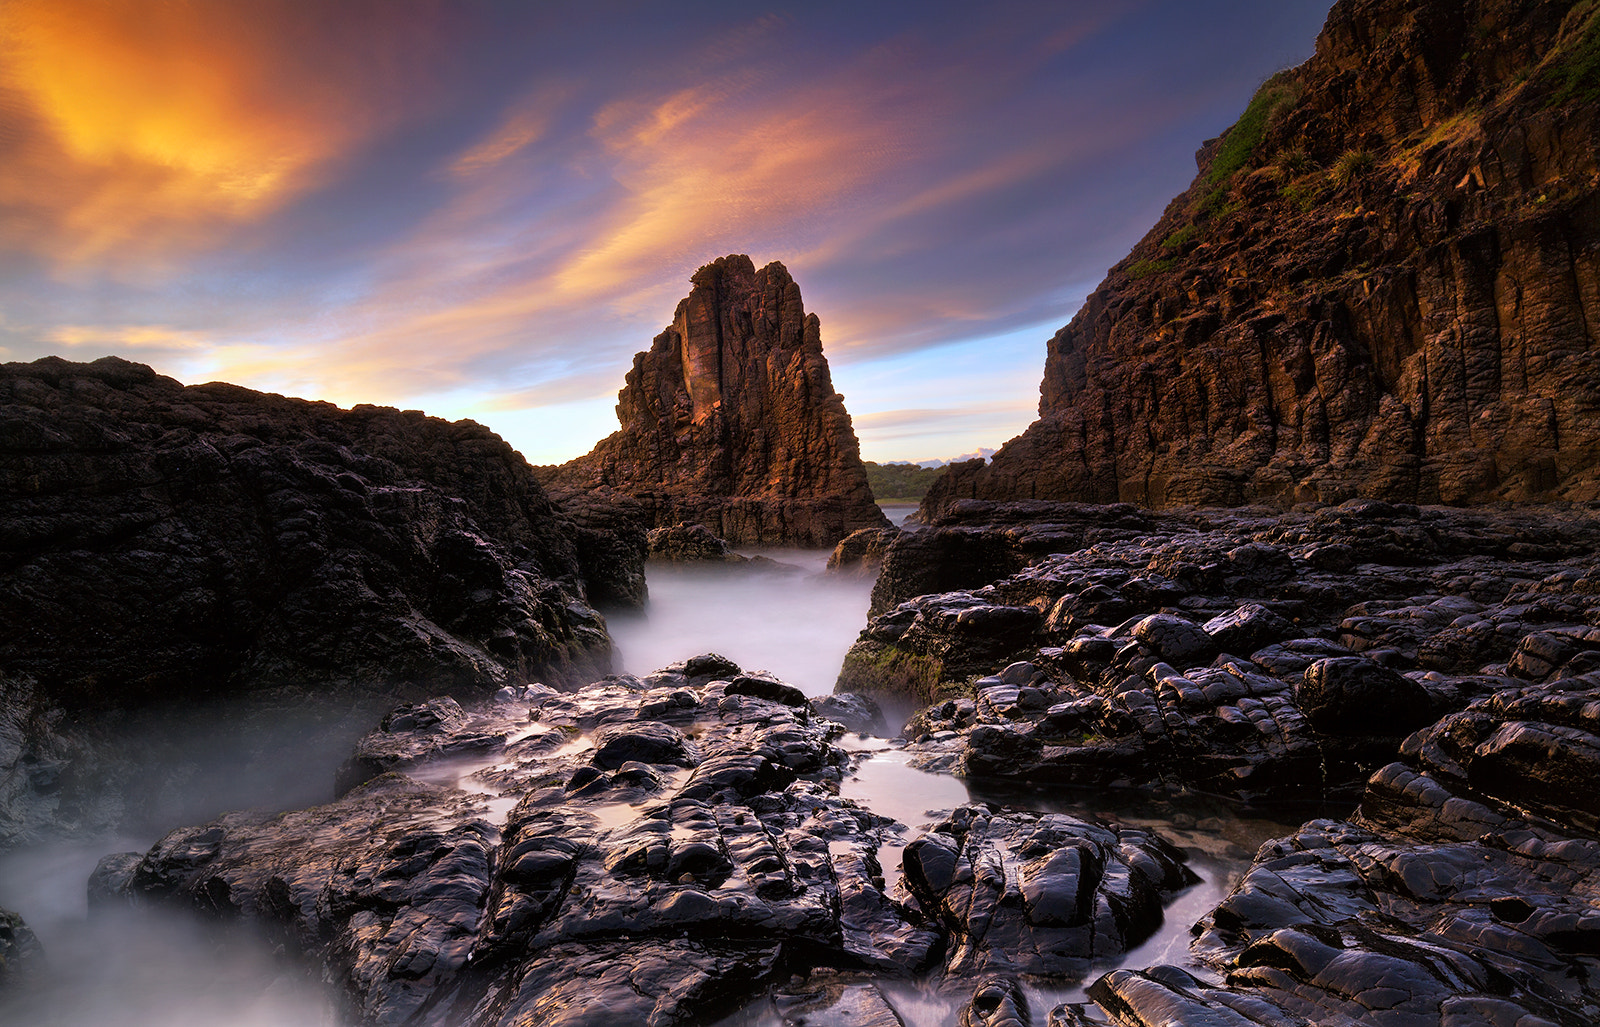 Photograph Cathedral rocks by Goff Kitsawad on 500px